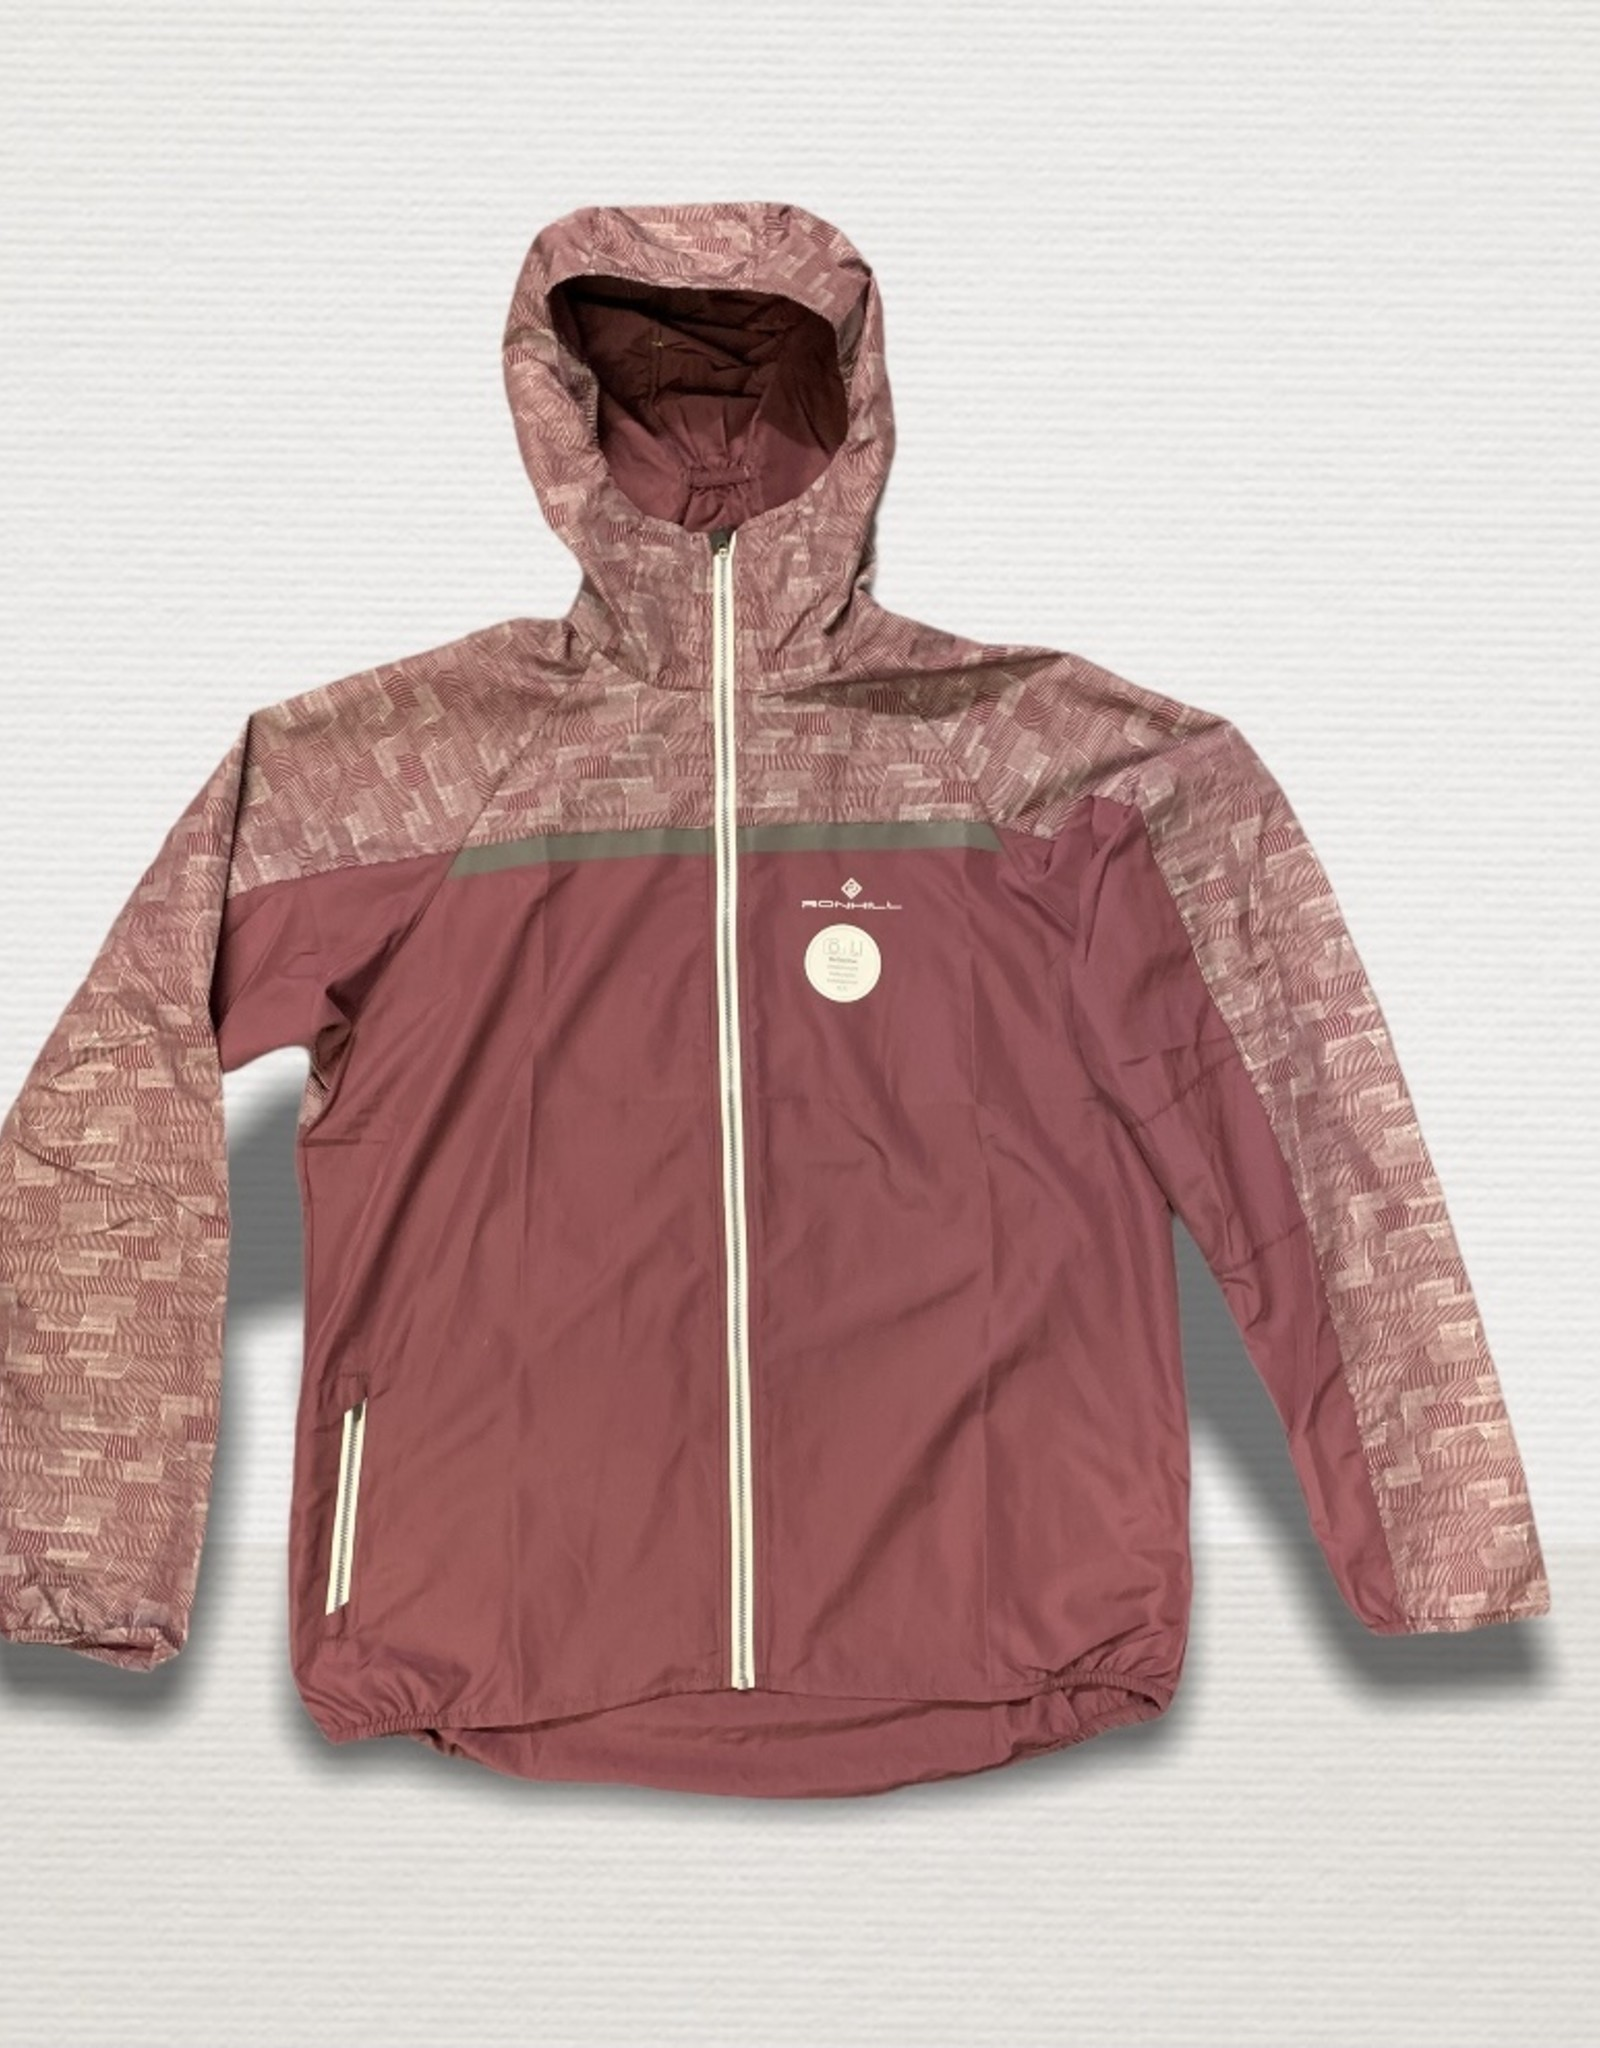 Ronhill Ronhill Afterlight Jacket - Mens AW19